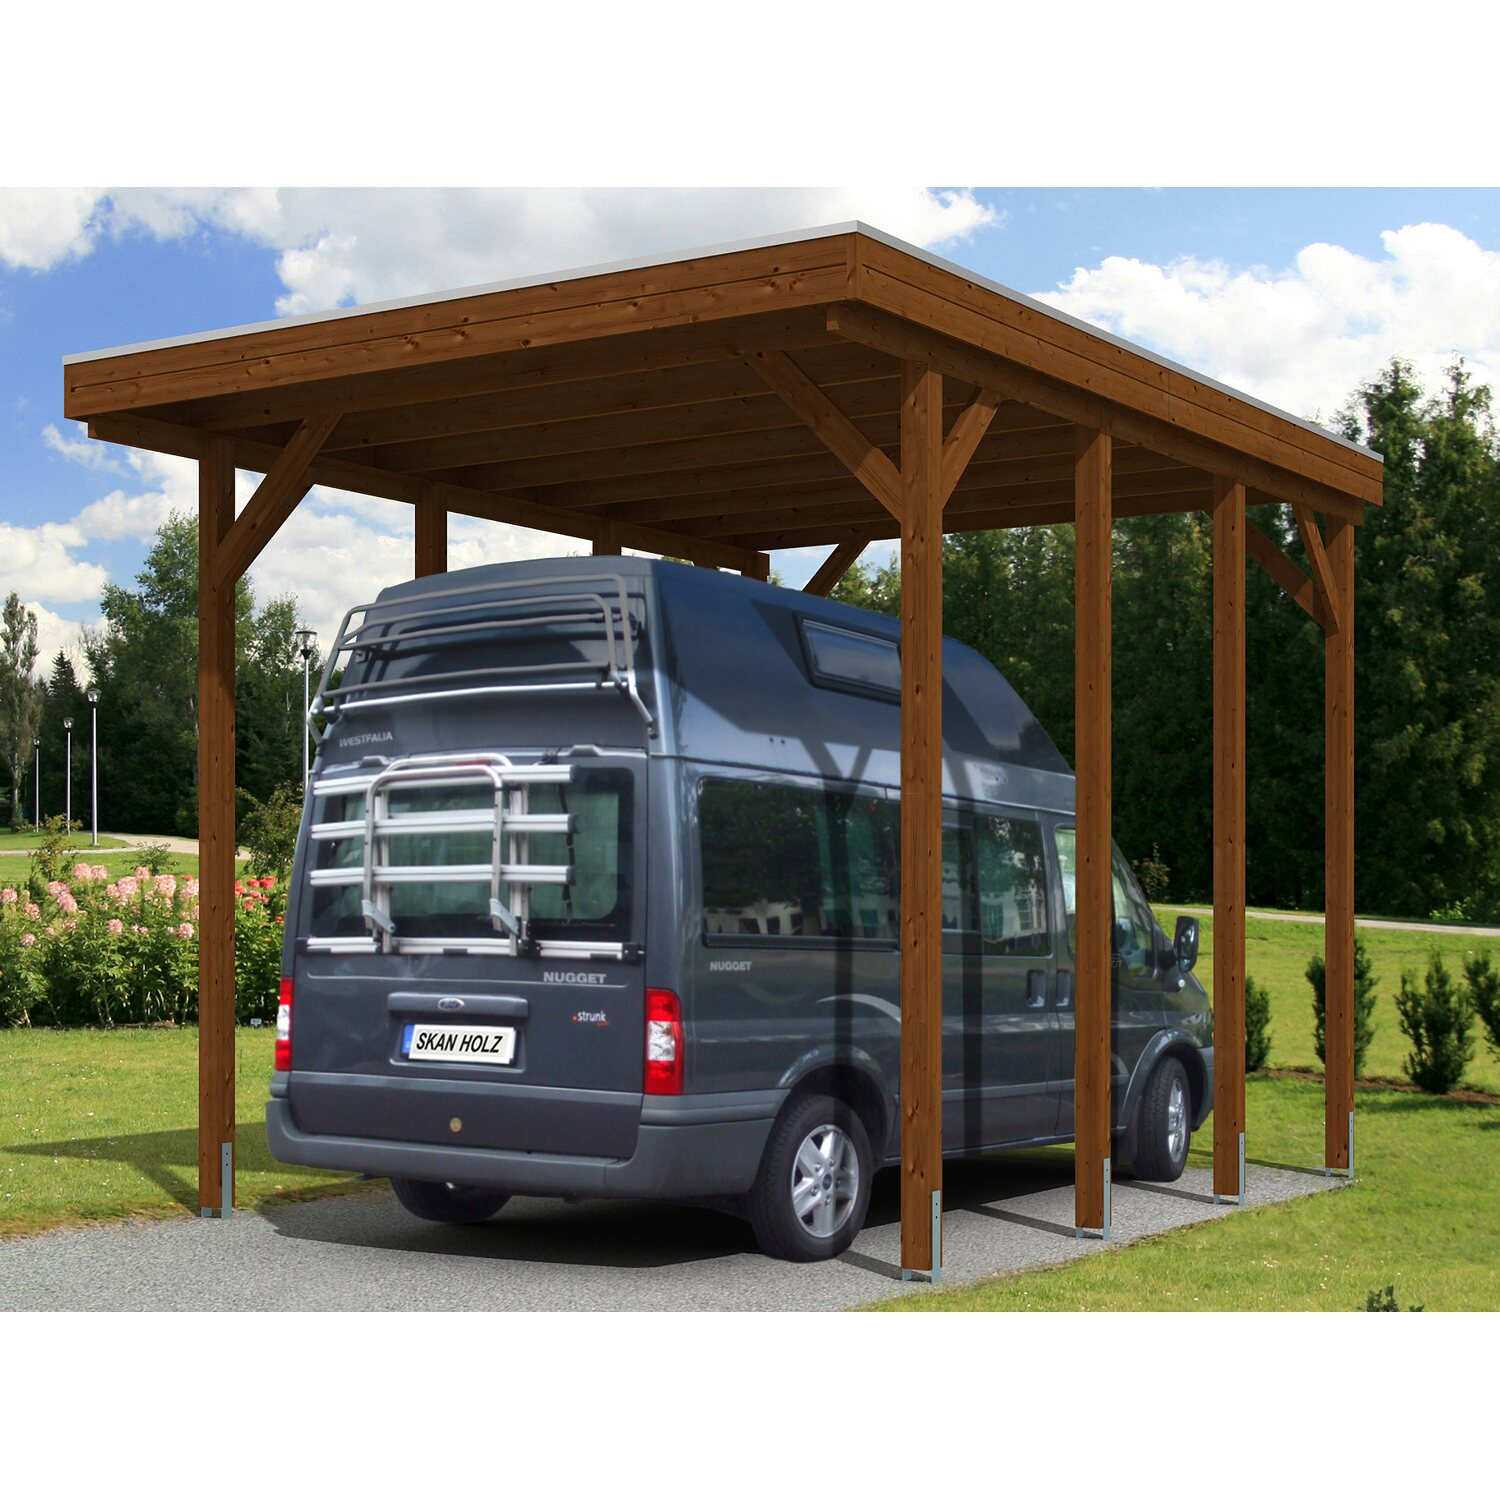 skan holz carport friesland caravan 397 cm x 555 cm nussbaum kaufen bei obi. Black Bedroom Furniture Sets. Home Design Ideas